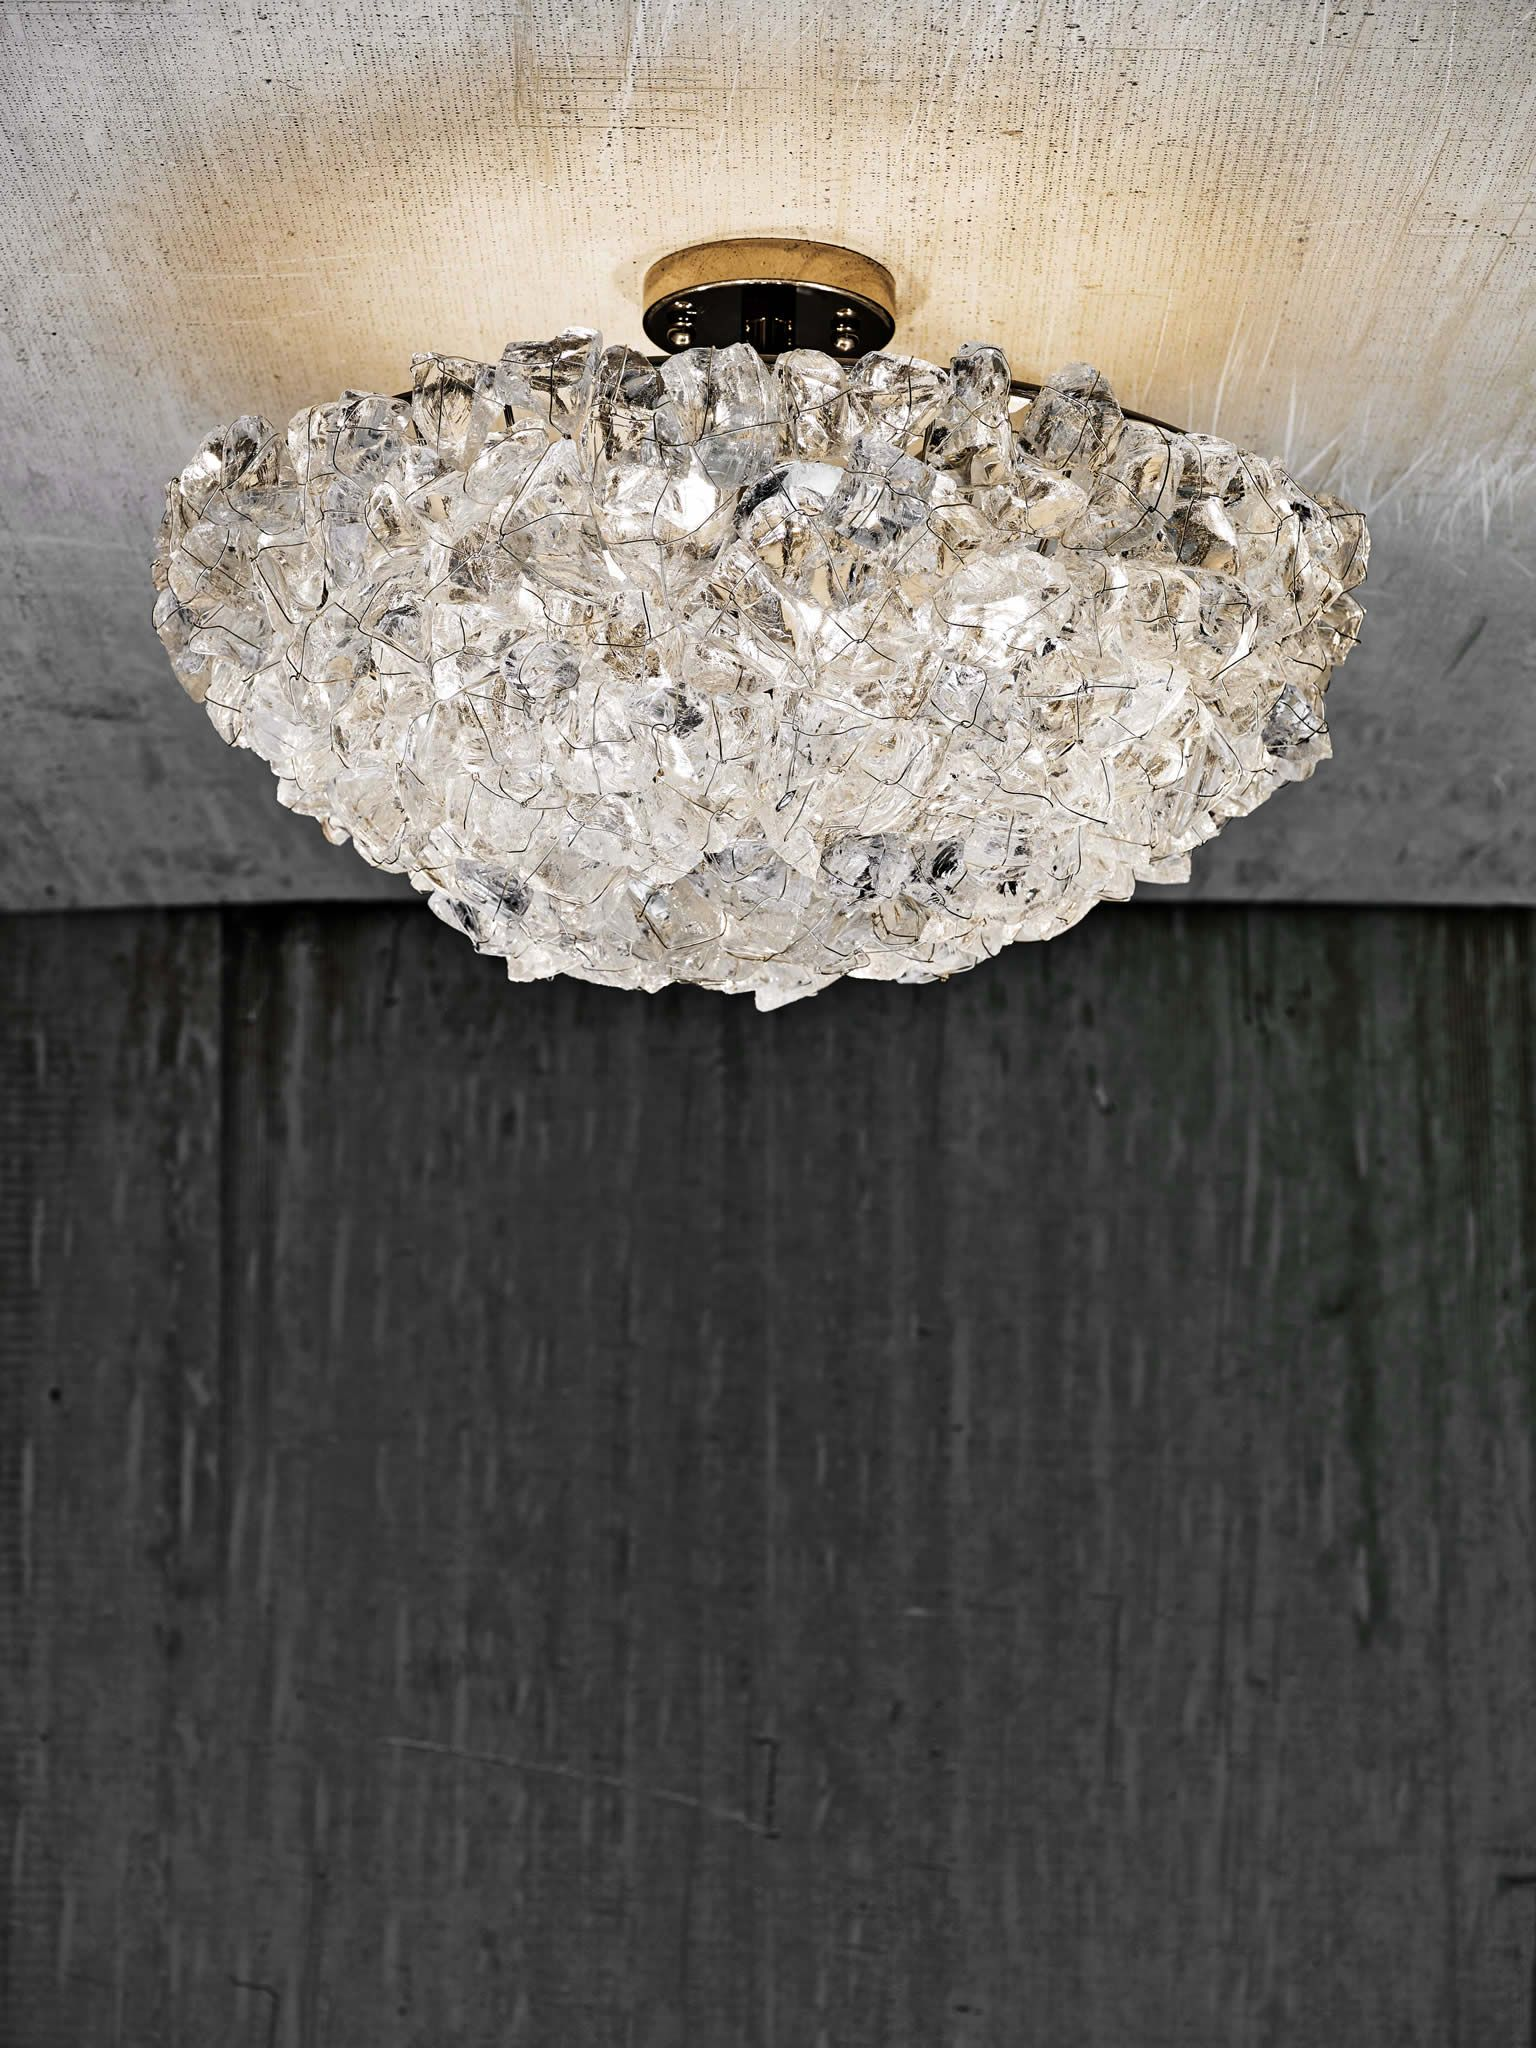 Rock crystal ceiling fixture rock crystal collection cl quartz and other natural stone accessories are making a big splash this year we can see why this quartz light fixture would add some major glam to any arubaitofo Gallery